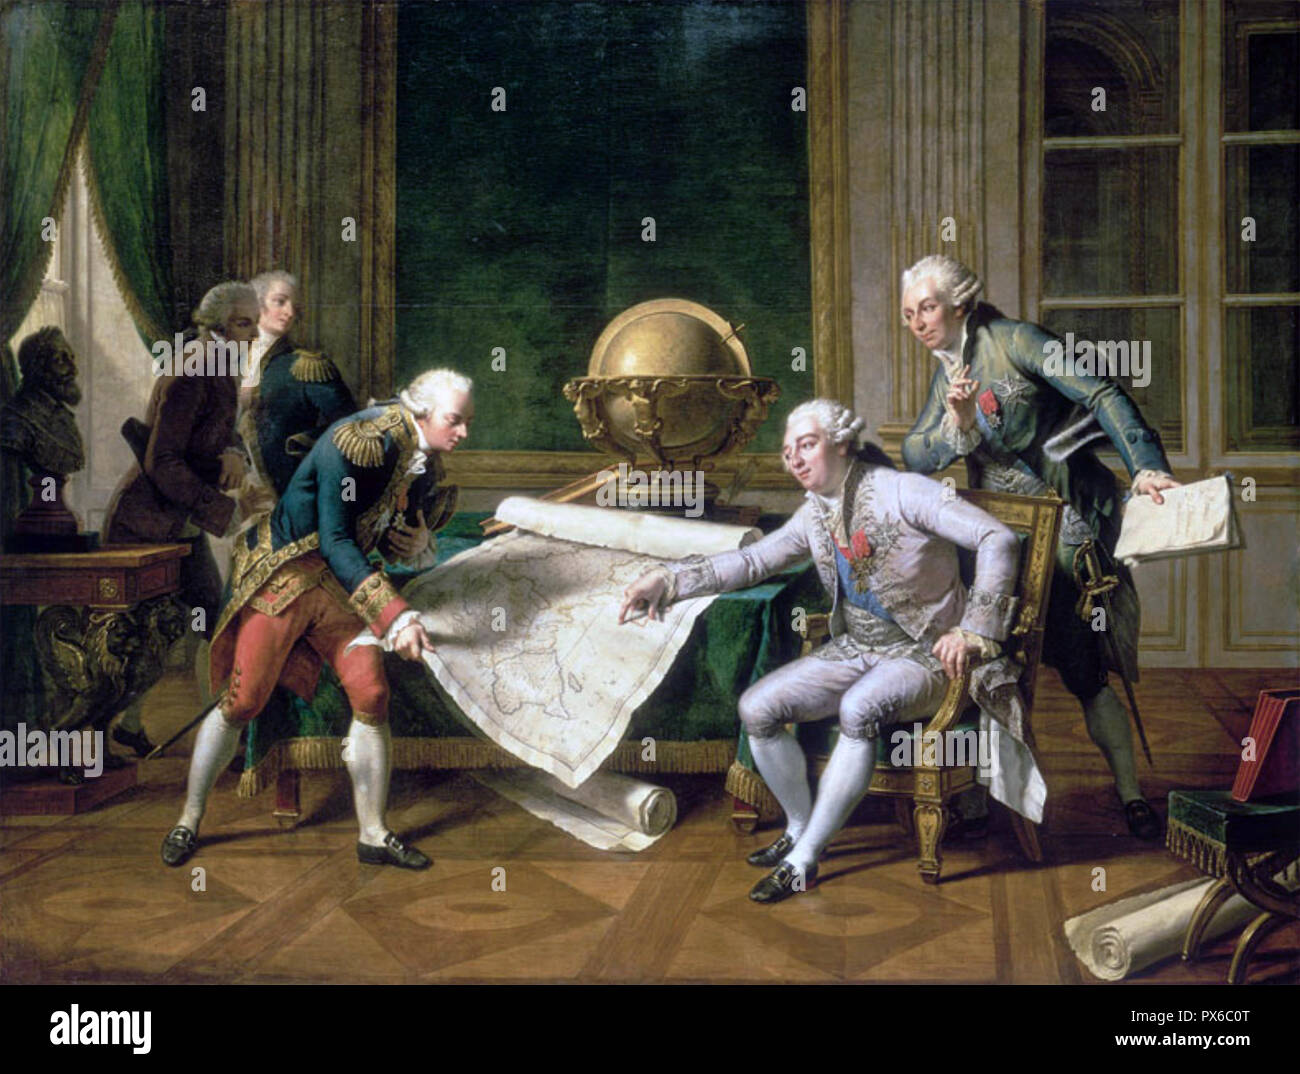 JEAN-FRANÇOIS de GALAUP, comte de Lapérouse (1741-1788 ?) French naval officer and explorer. An 1817 painting by Nicholas-Andre Monsiau showing Galaup receiving his orders from Louis XVI - Stock Image